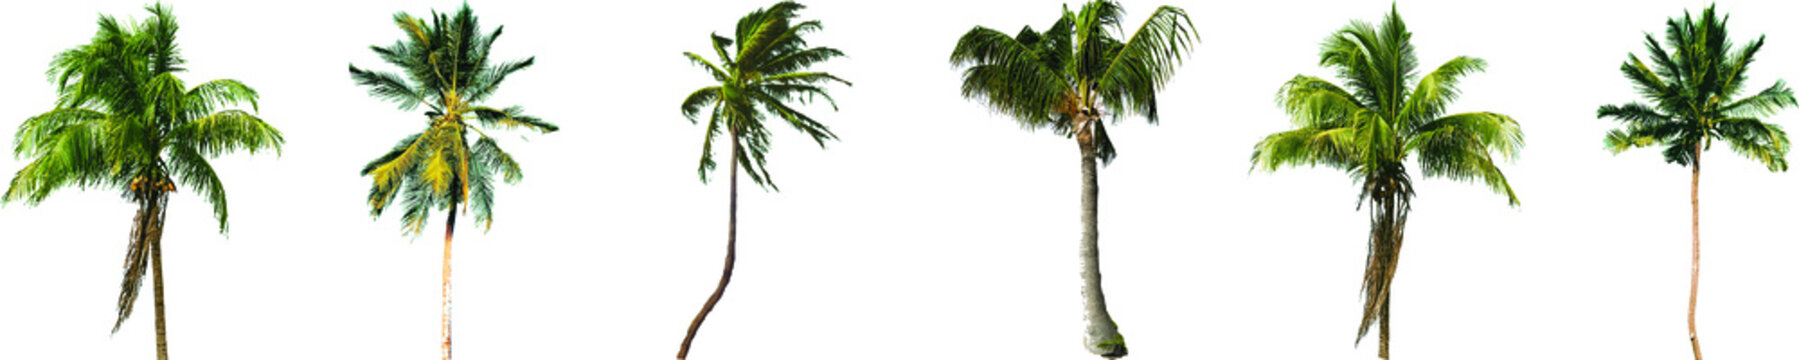 Collection of coconut trees with different types and sizes. Vectorized from high resolution images